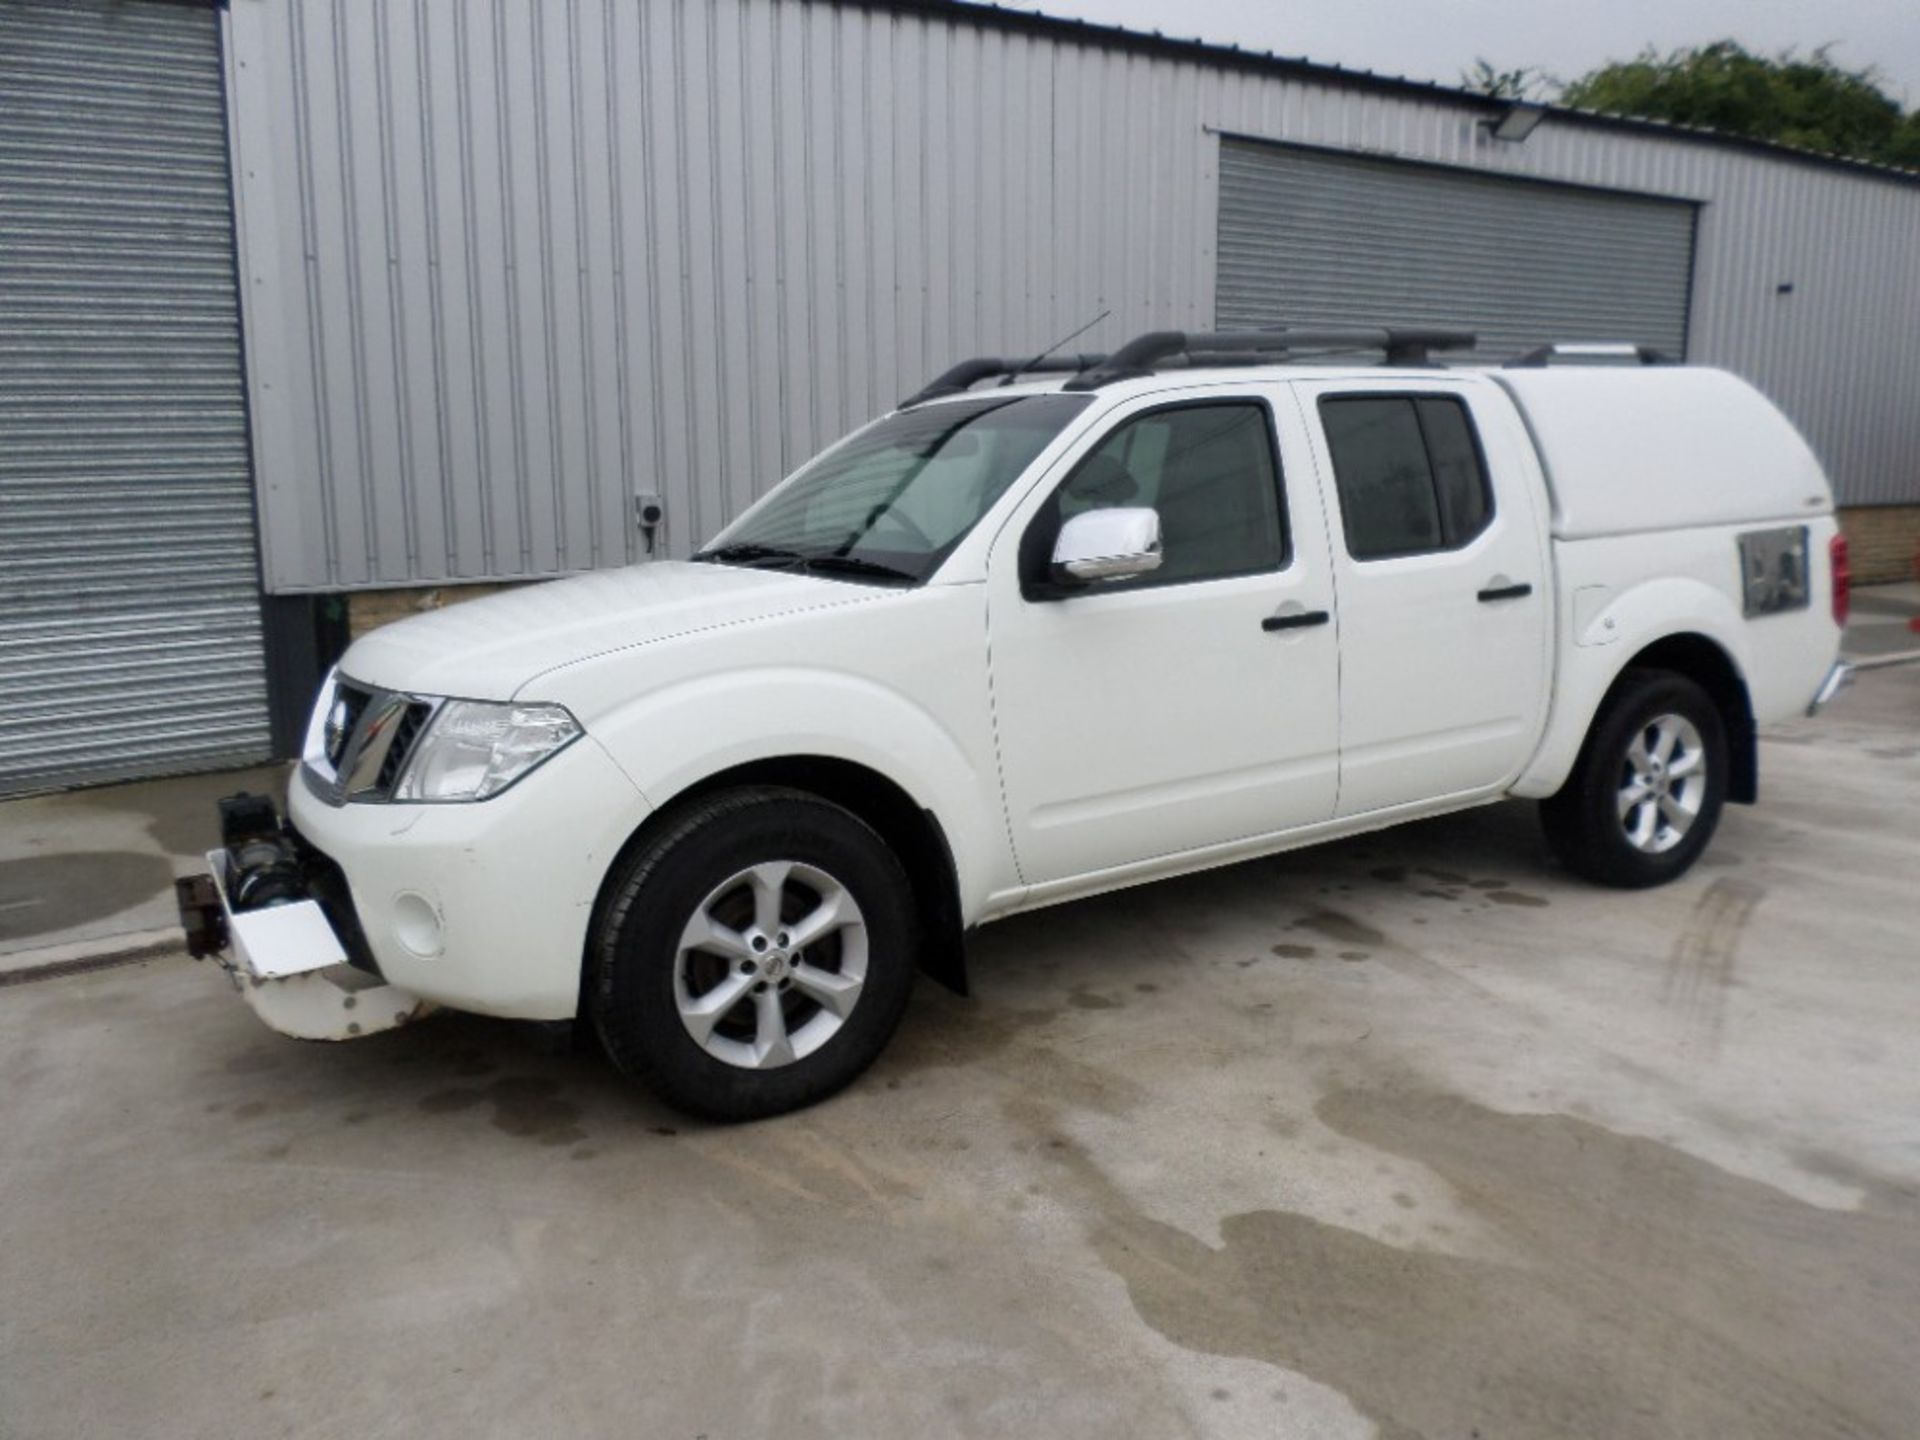 2011 NISSAN NAVARA DCI 188 TEKNA D/CAB PICKUP (LOCATION SHEFFIELD) UNREGISTERED EX MOD, 115121M (